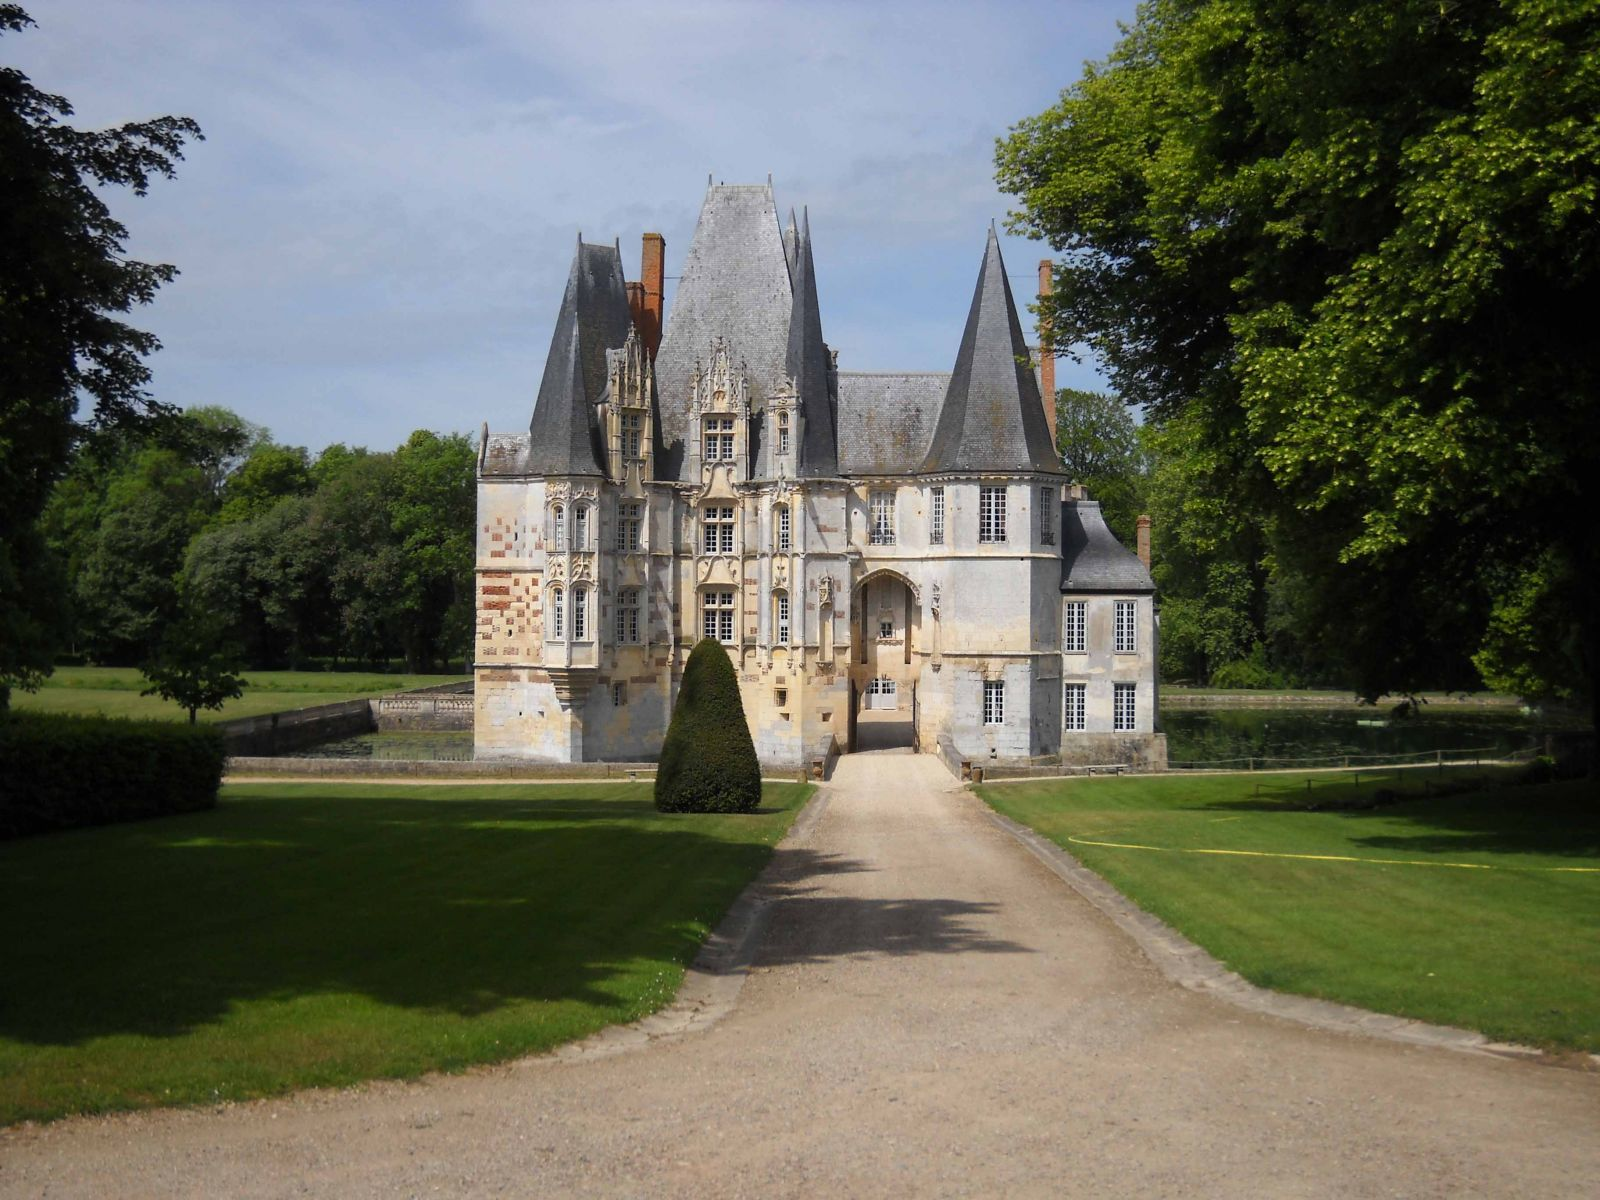 Pretty chateaux abound in Normandy